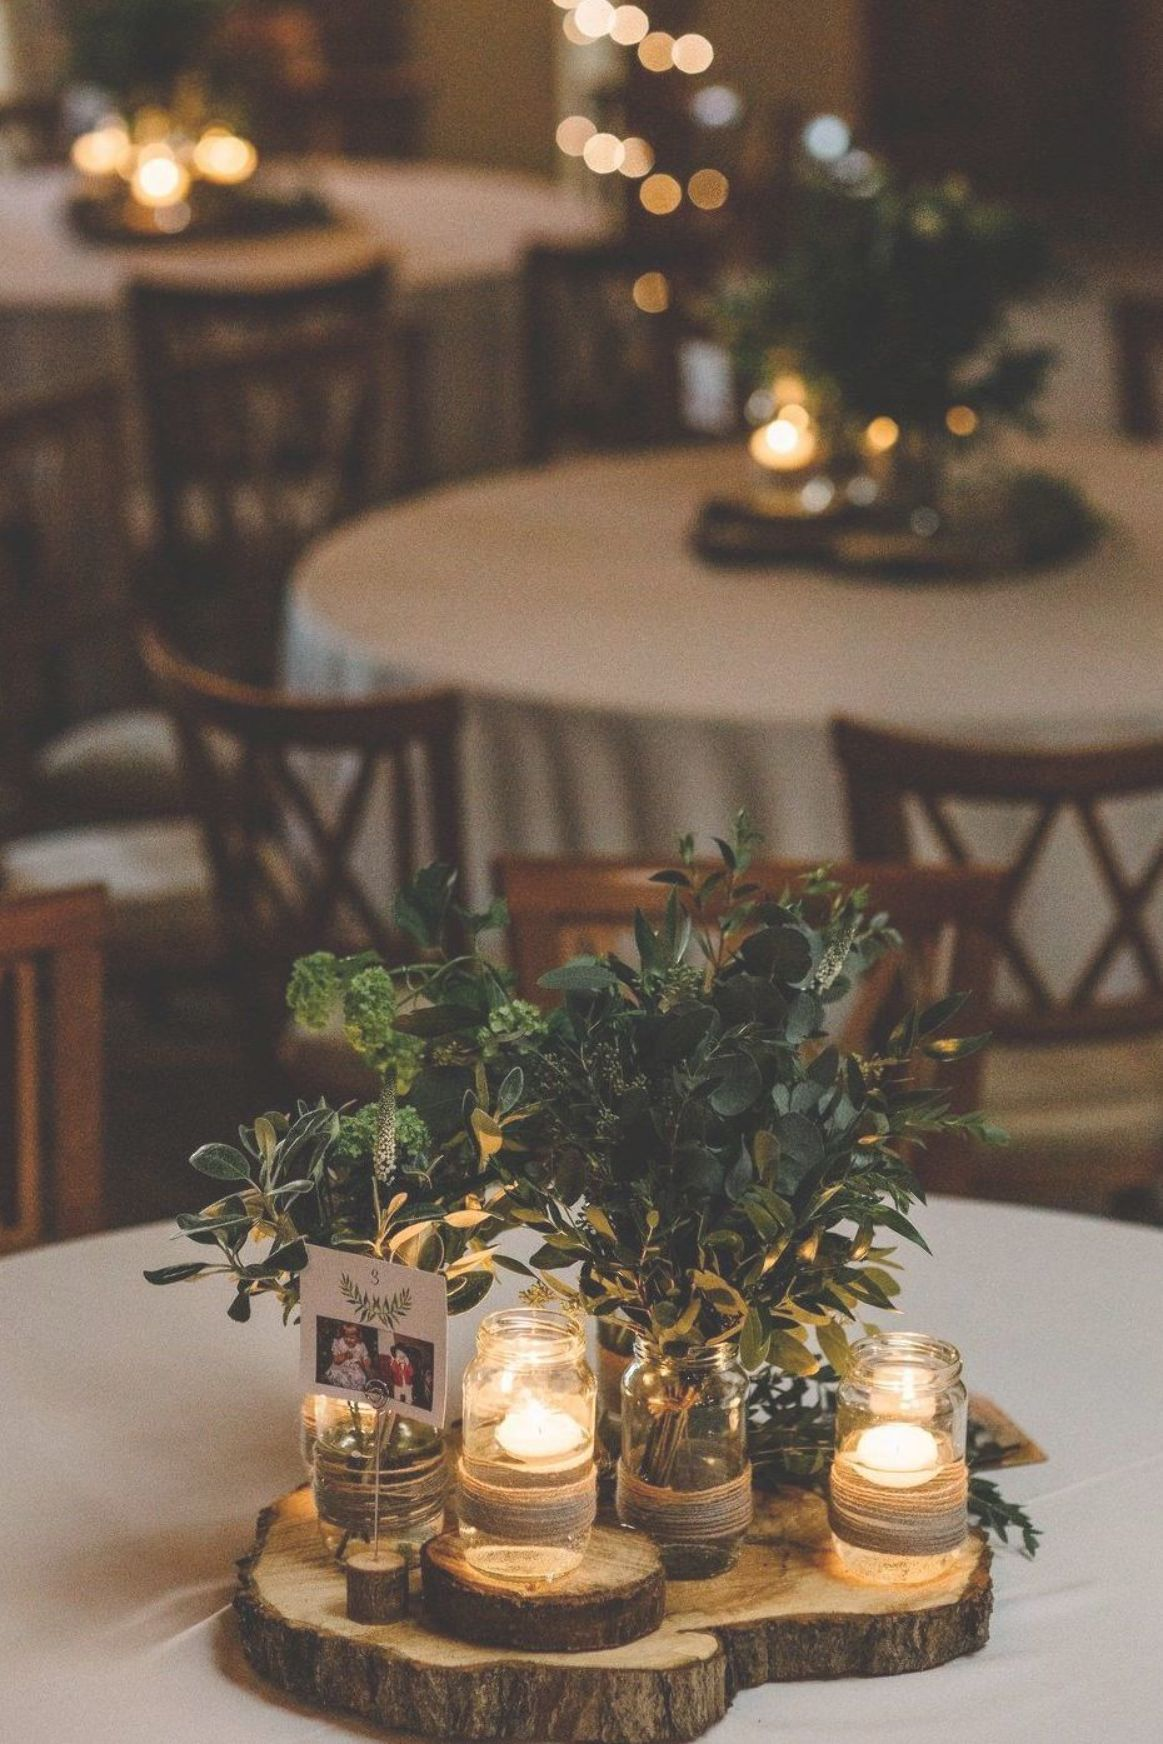 Rustic Table Wedding Decor With Foliage White Floral Centrepieces Intimate Greenery Wedding Rustic Wedding Table Rustic Wedding Decor Rustic Wedding Venues